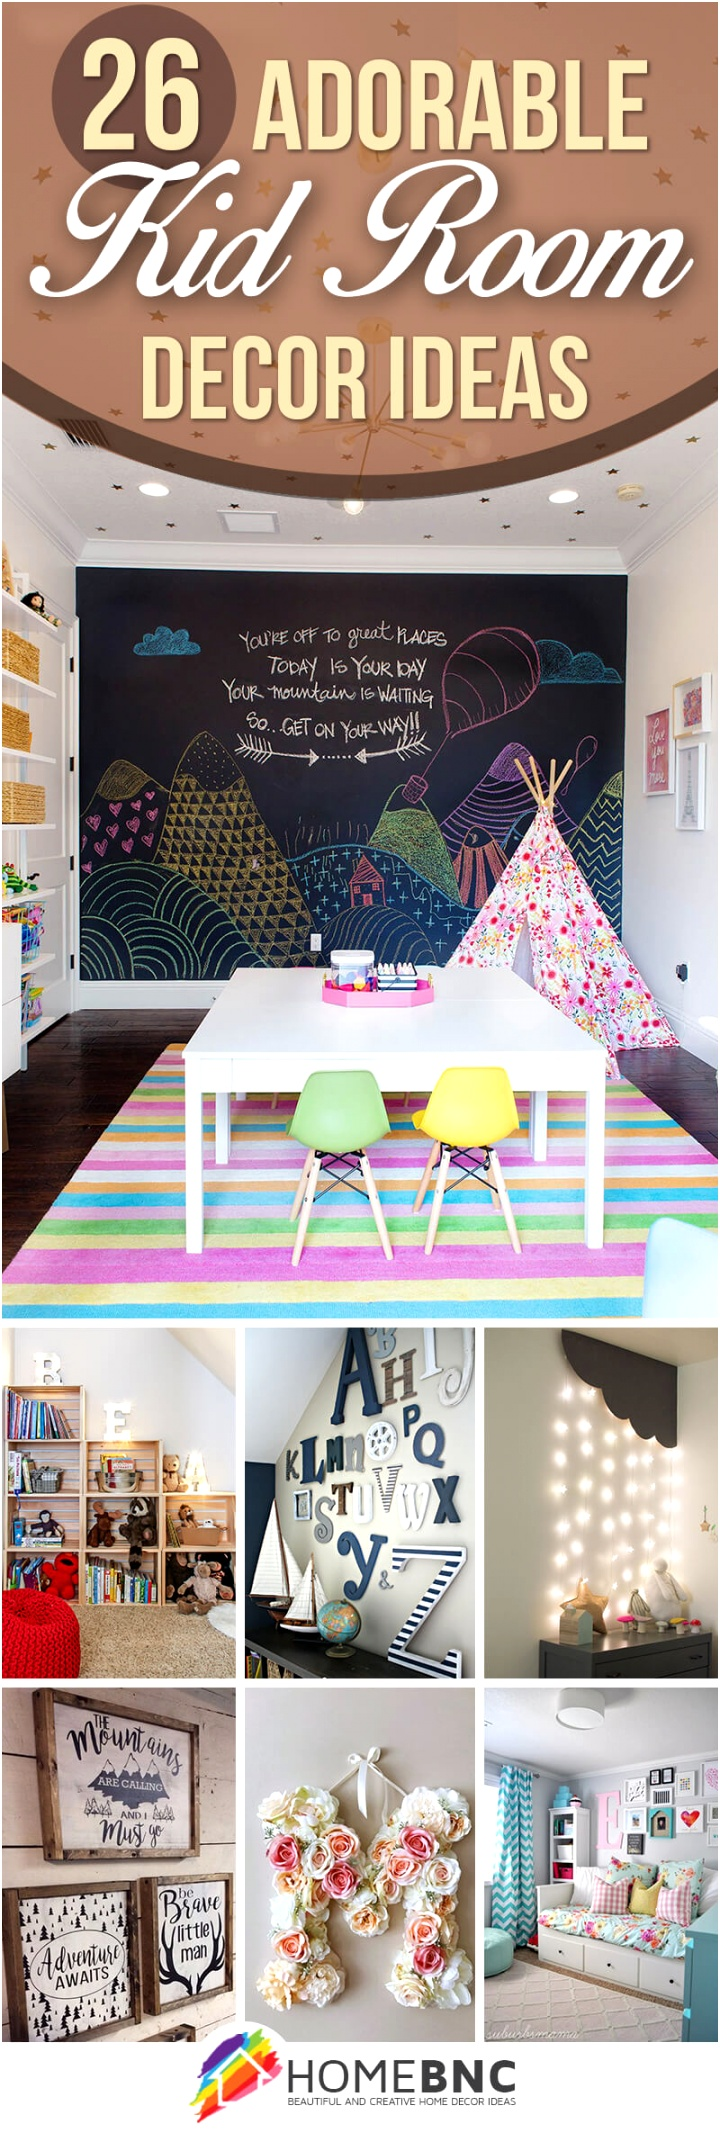 kid room decor ideas pinterest share homebnc